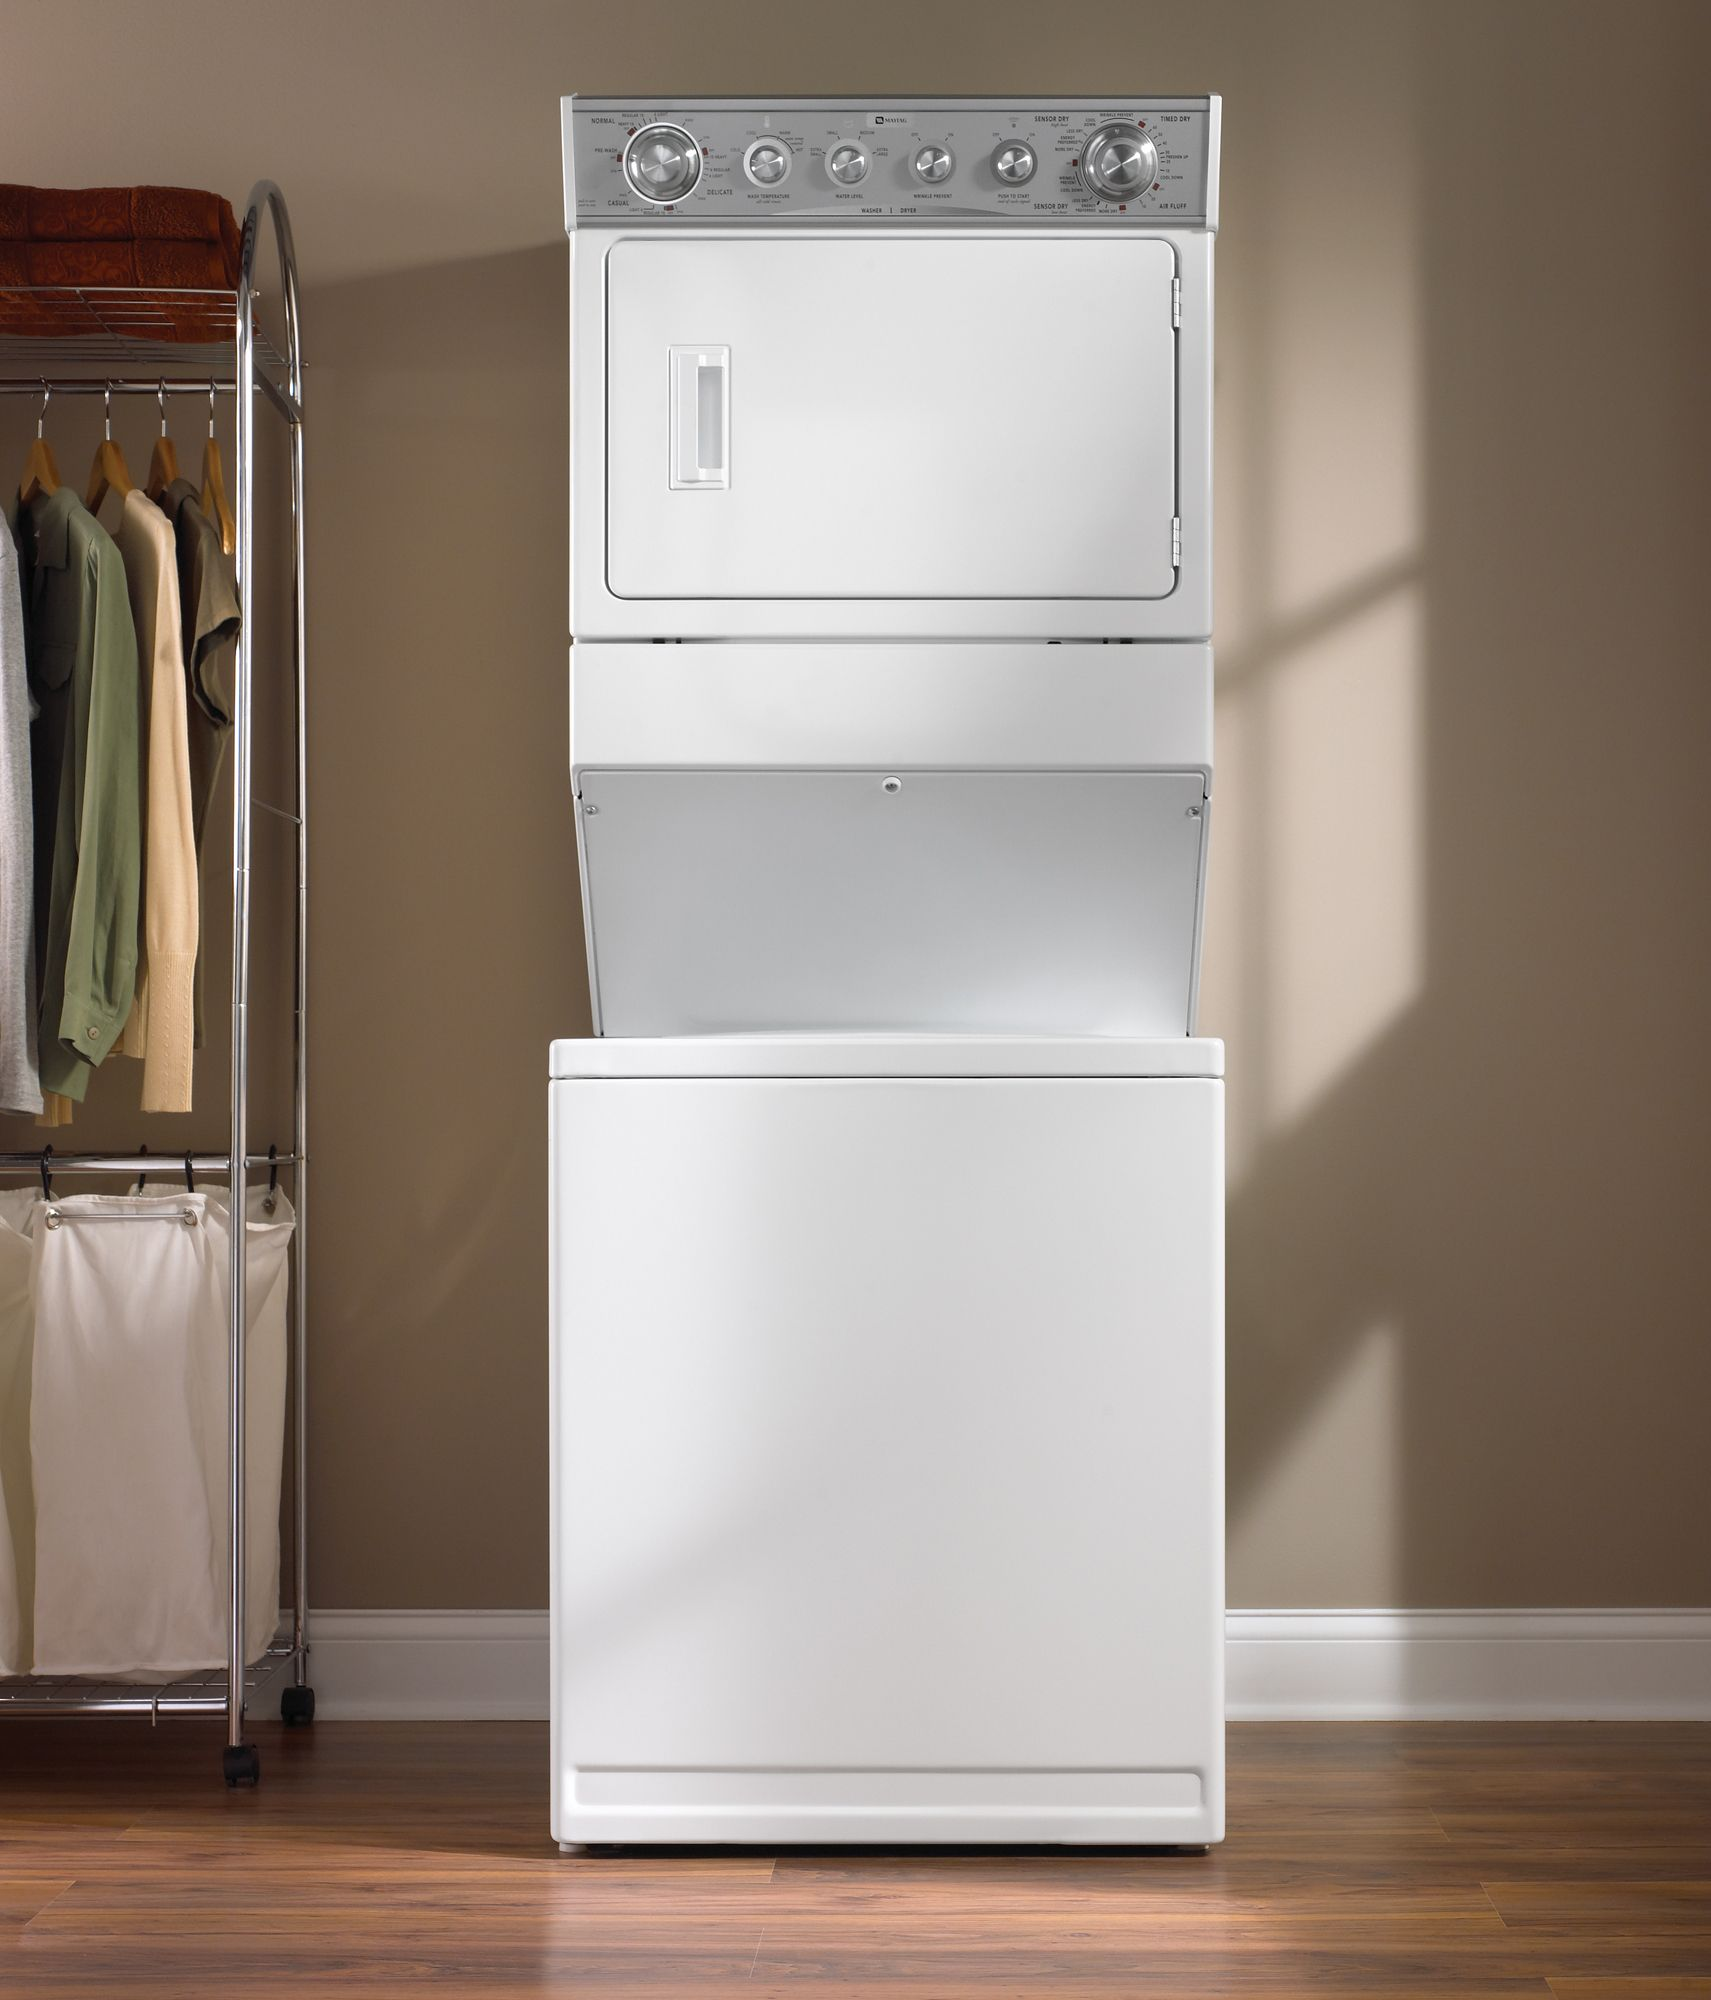 Maytag Super Capacity Gas Laundry Center (MGT3800T)